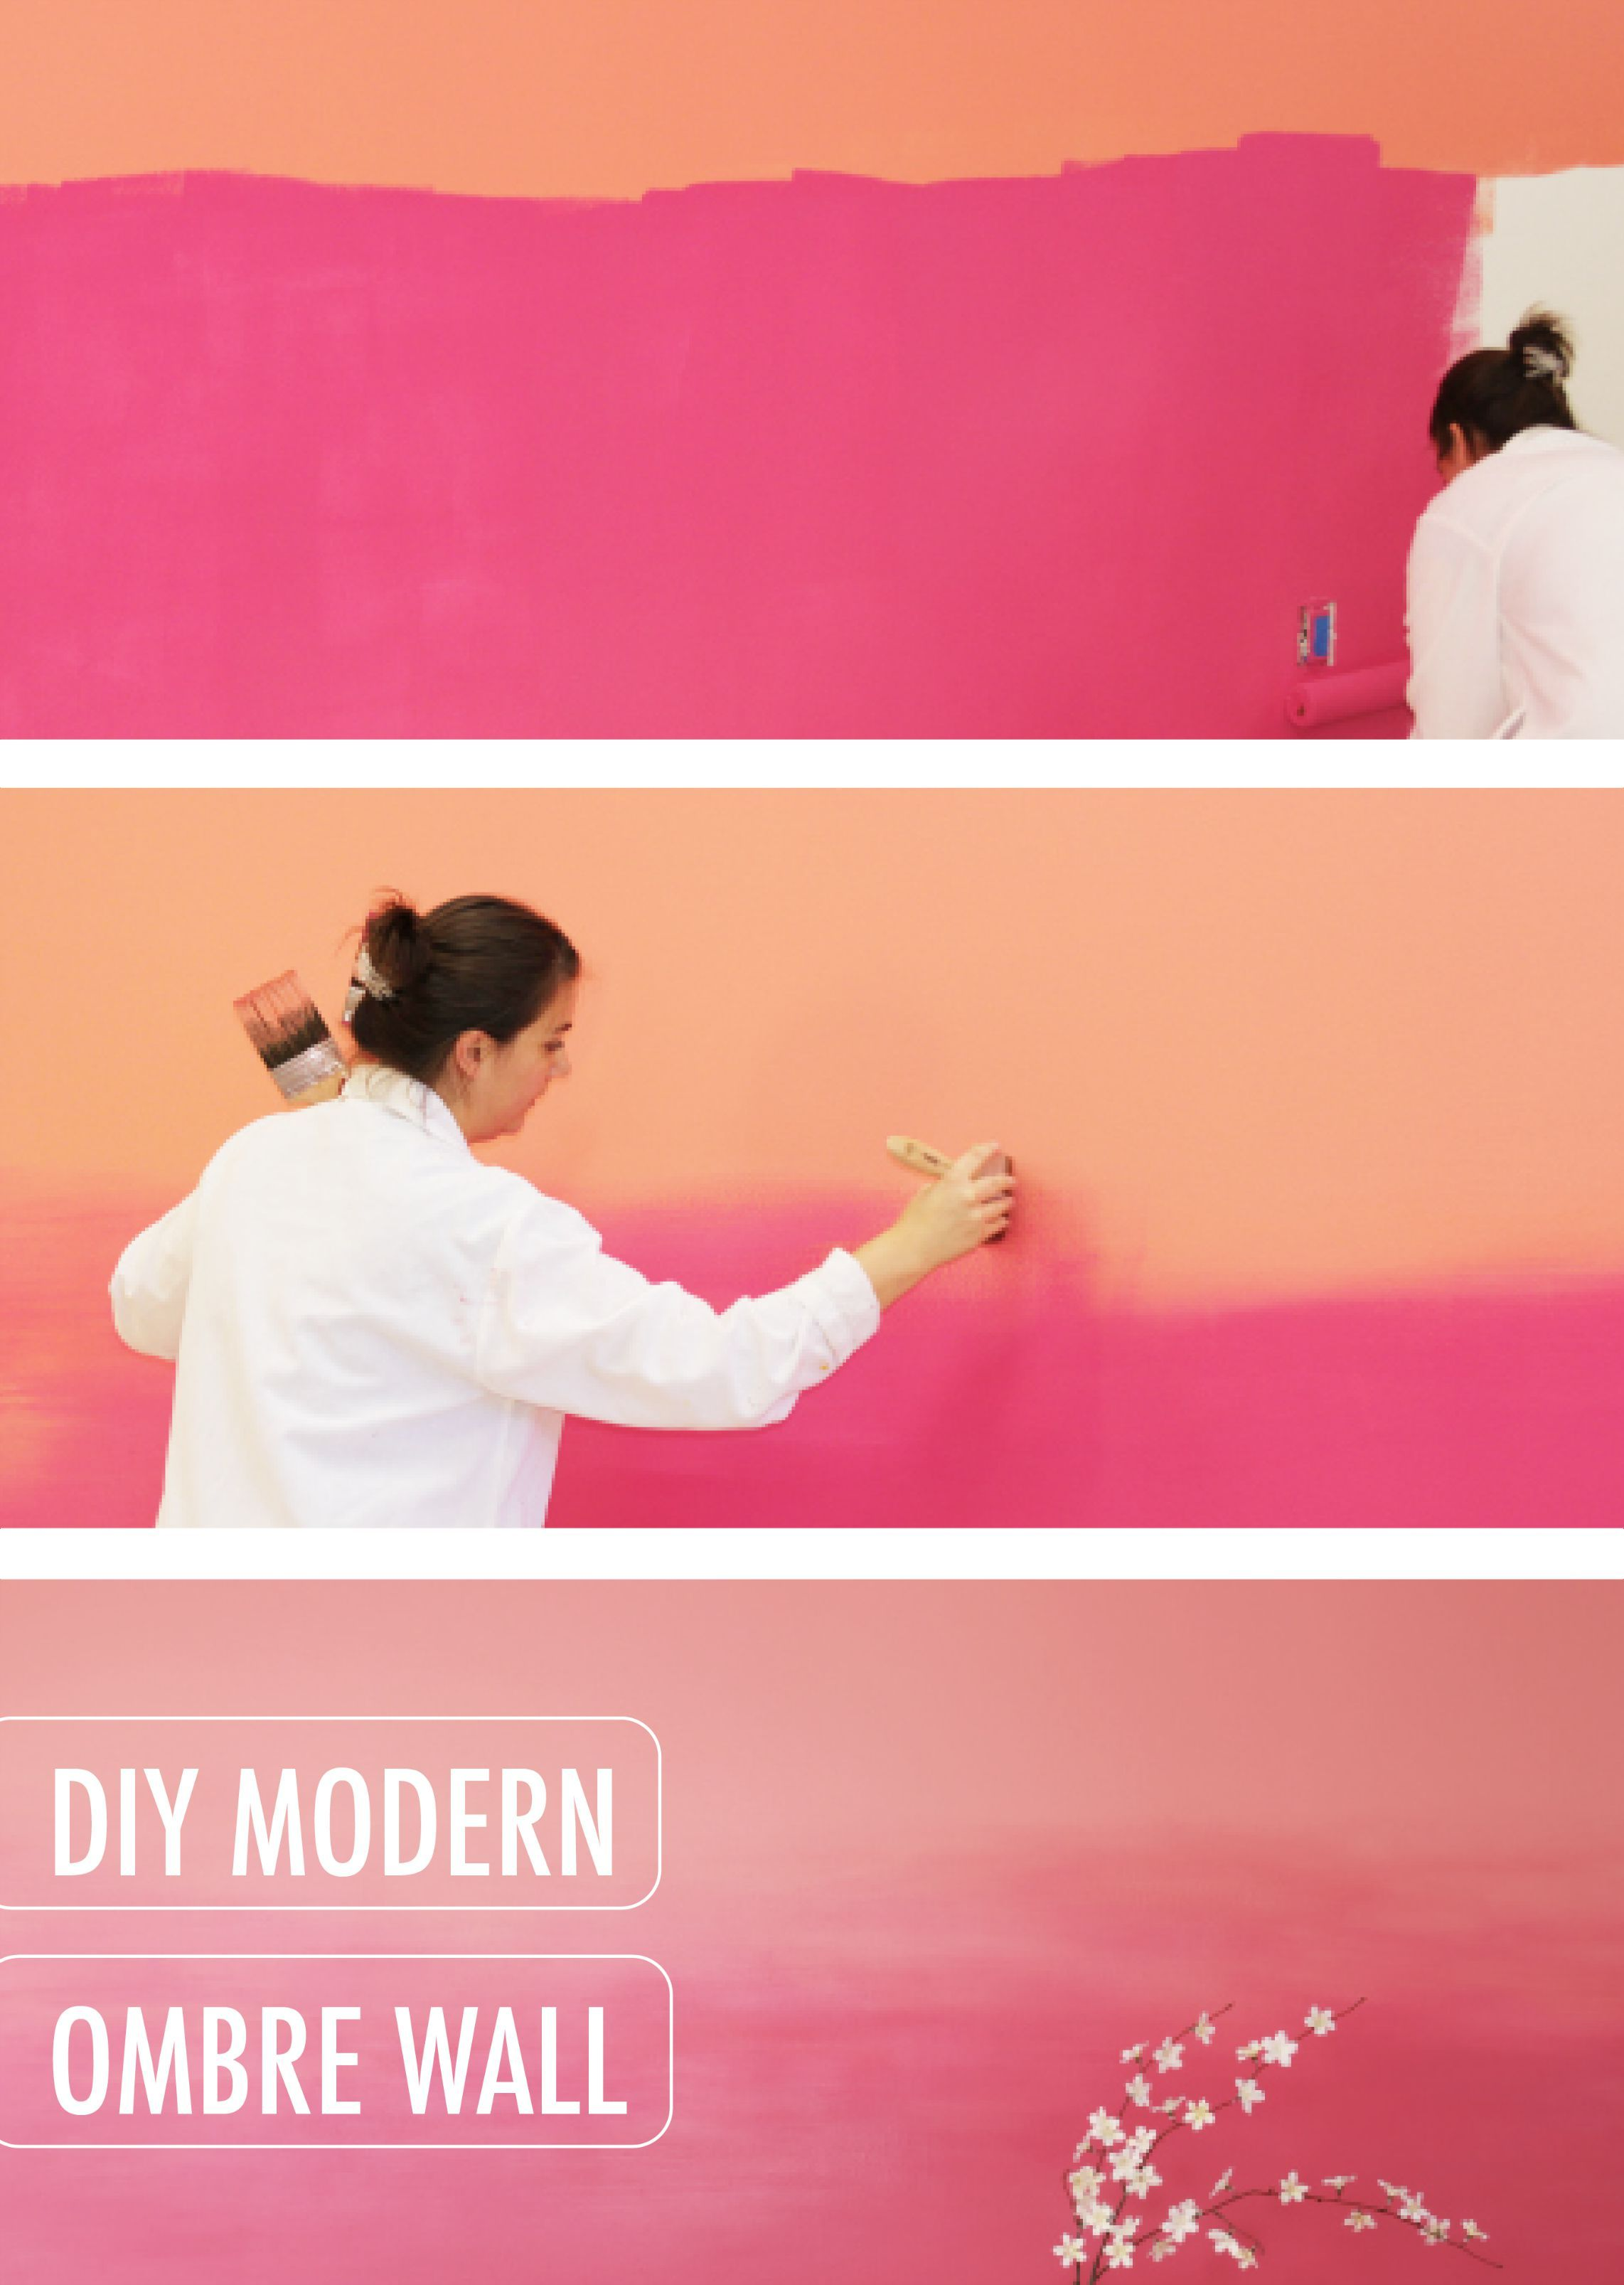 This Modern Pink Pagoda And Coral Coralette DIY Modern Ombre Wall Project  By BEHR Will Show You, Step By Step, How To Create The Perfect Gradient  With Your ...